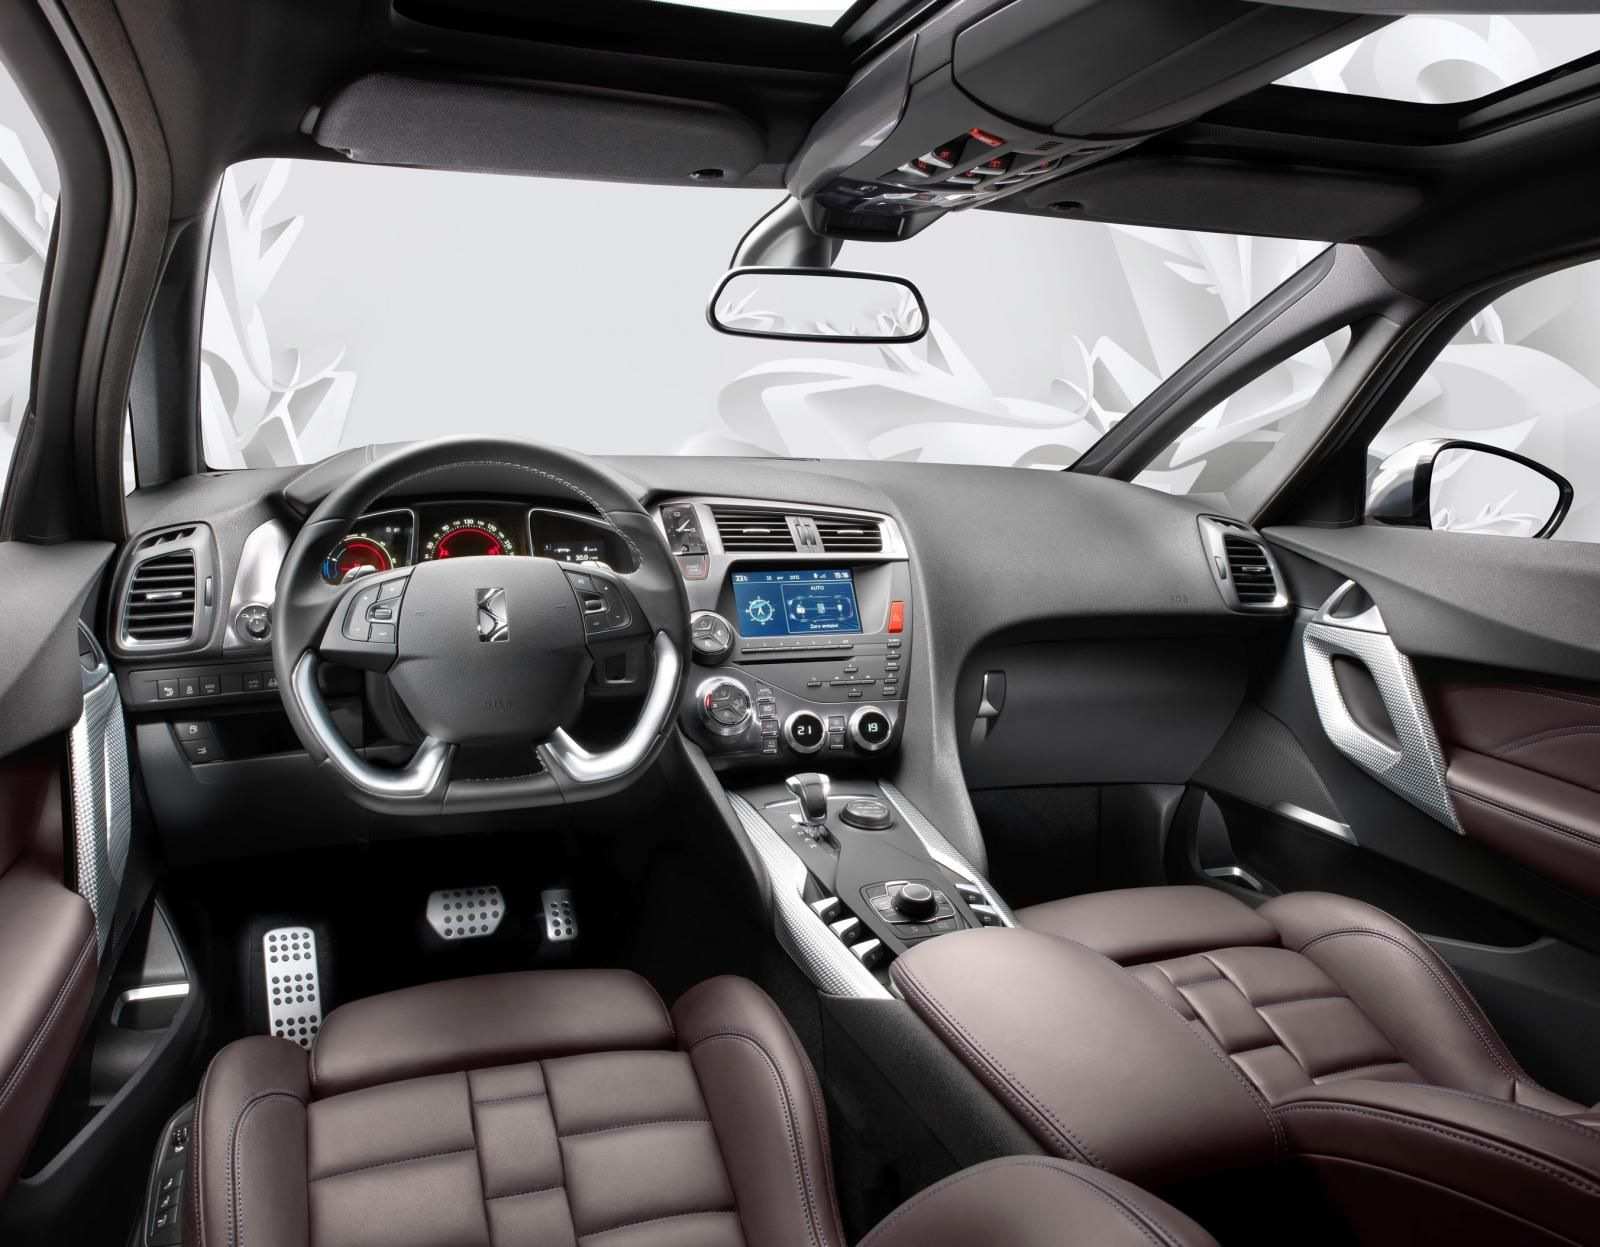 citroen ds5 interior just like a plane 39 s cockpit private pinterest interiors cars and. Black Bedroom Furniture Sets. Home Design Ideas